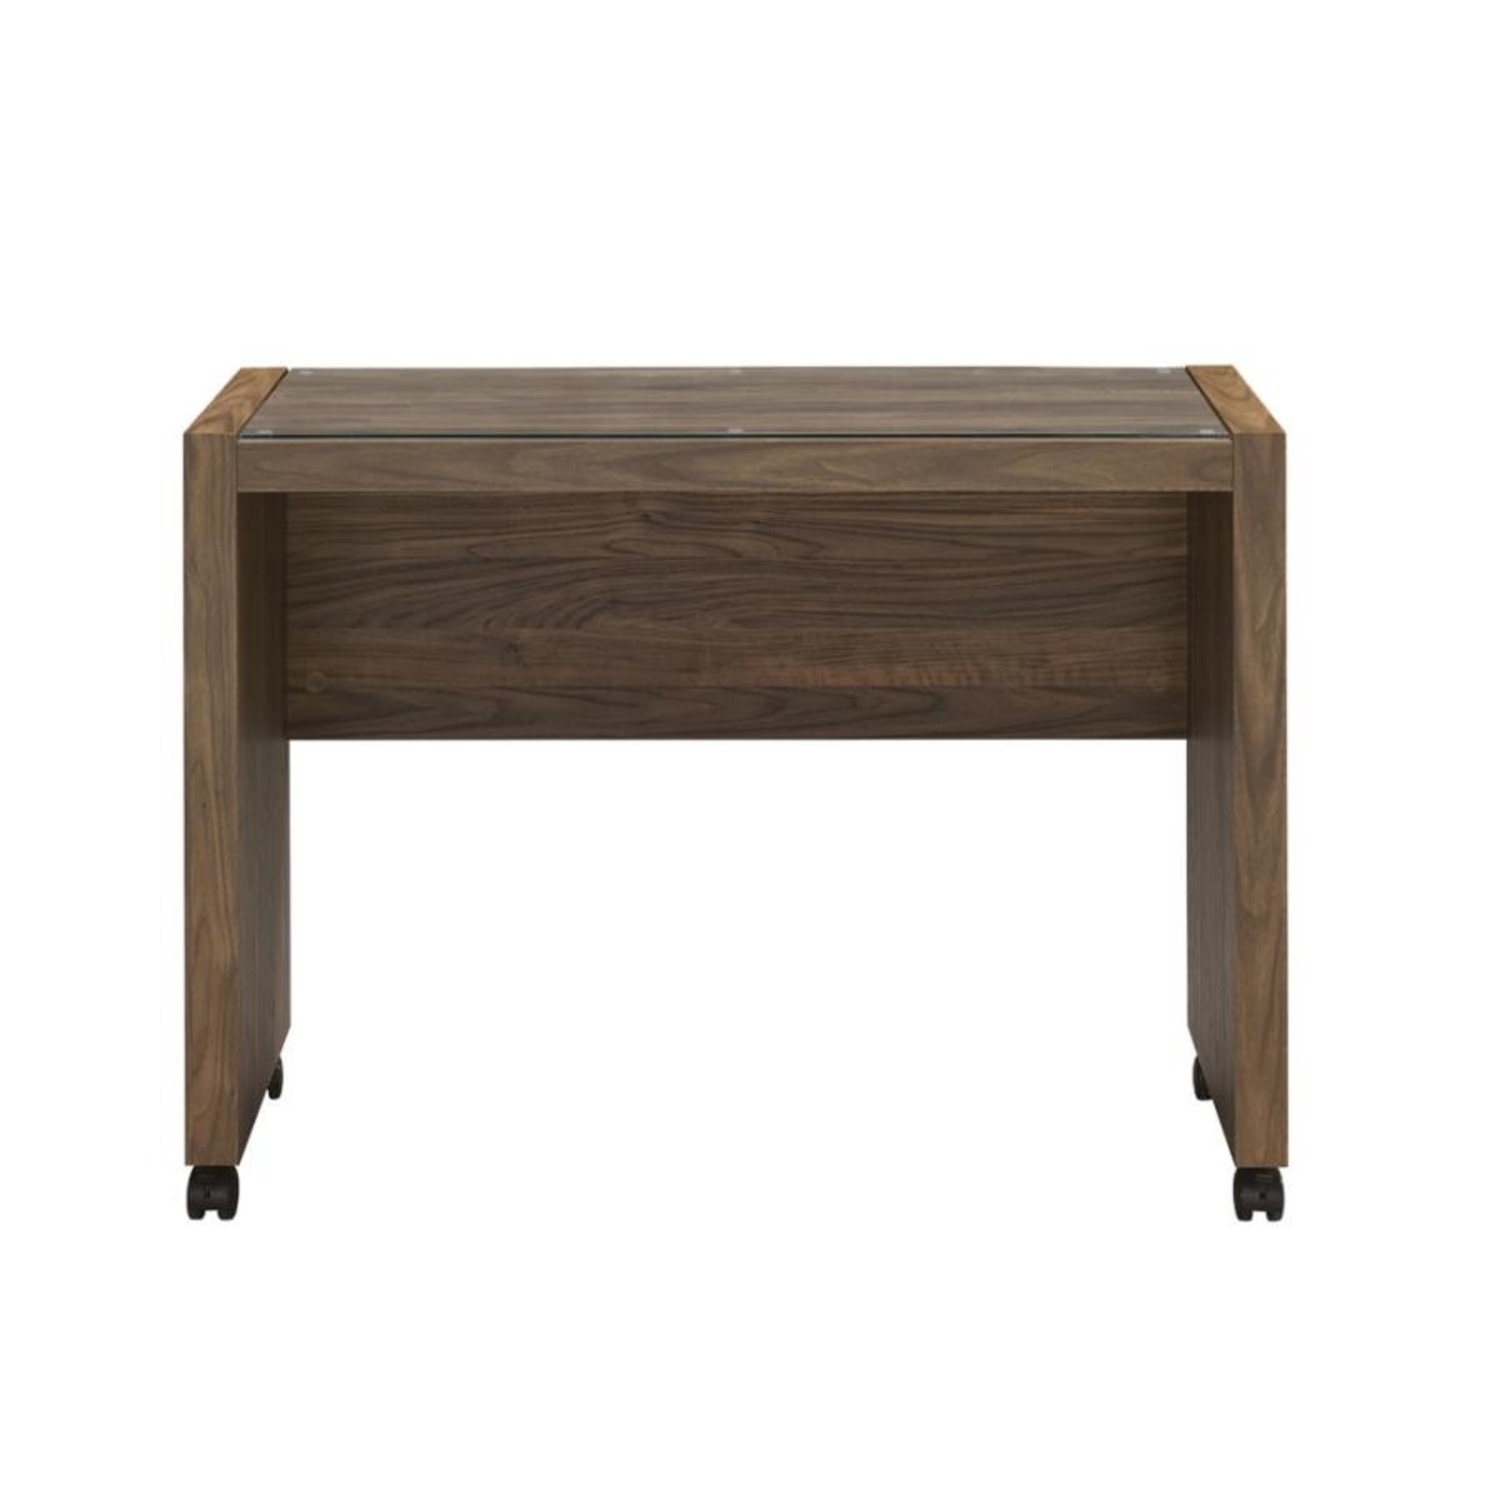 Mobile Return On Casters In Aged Walnut Finish  - image-1